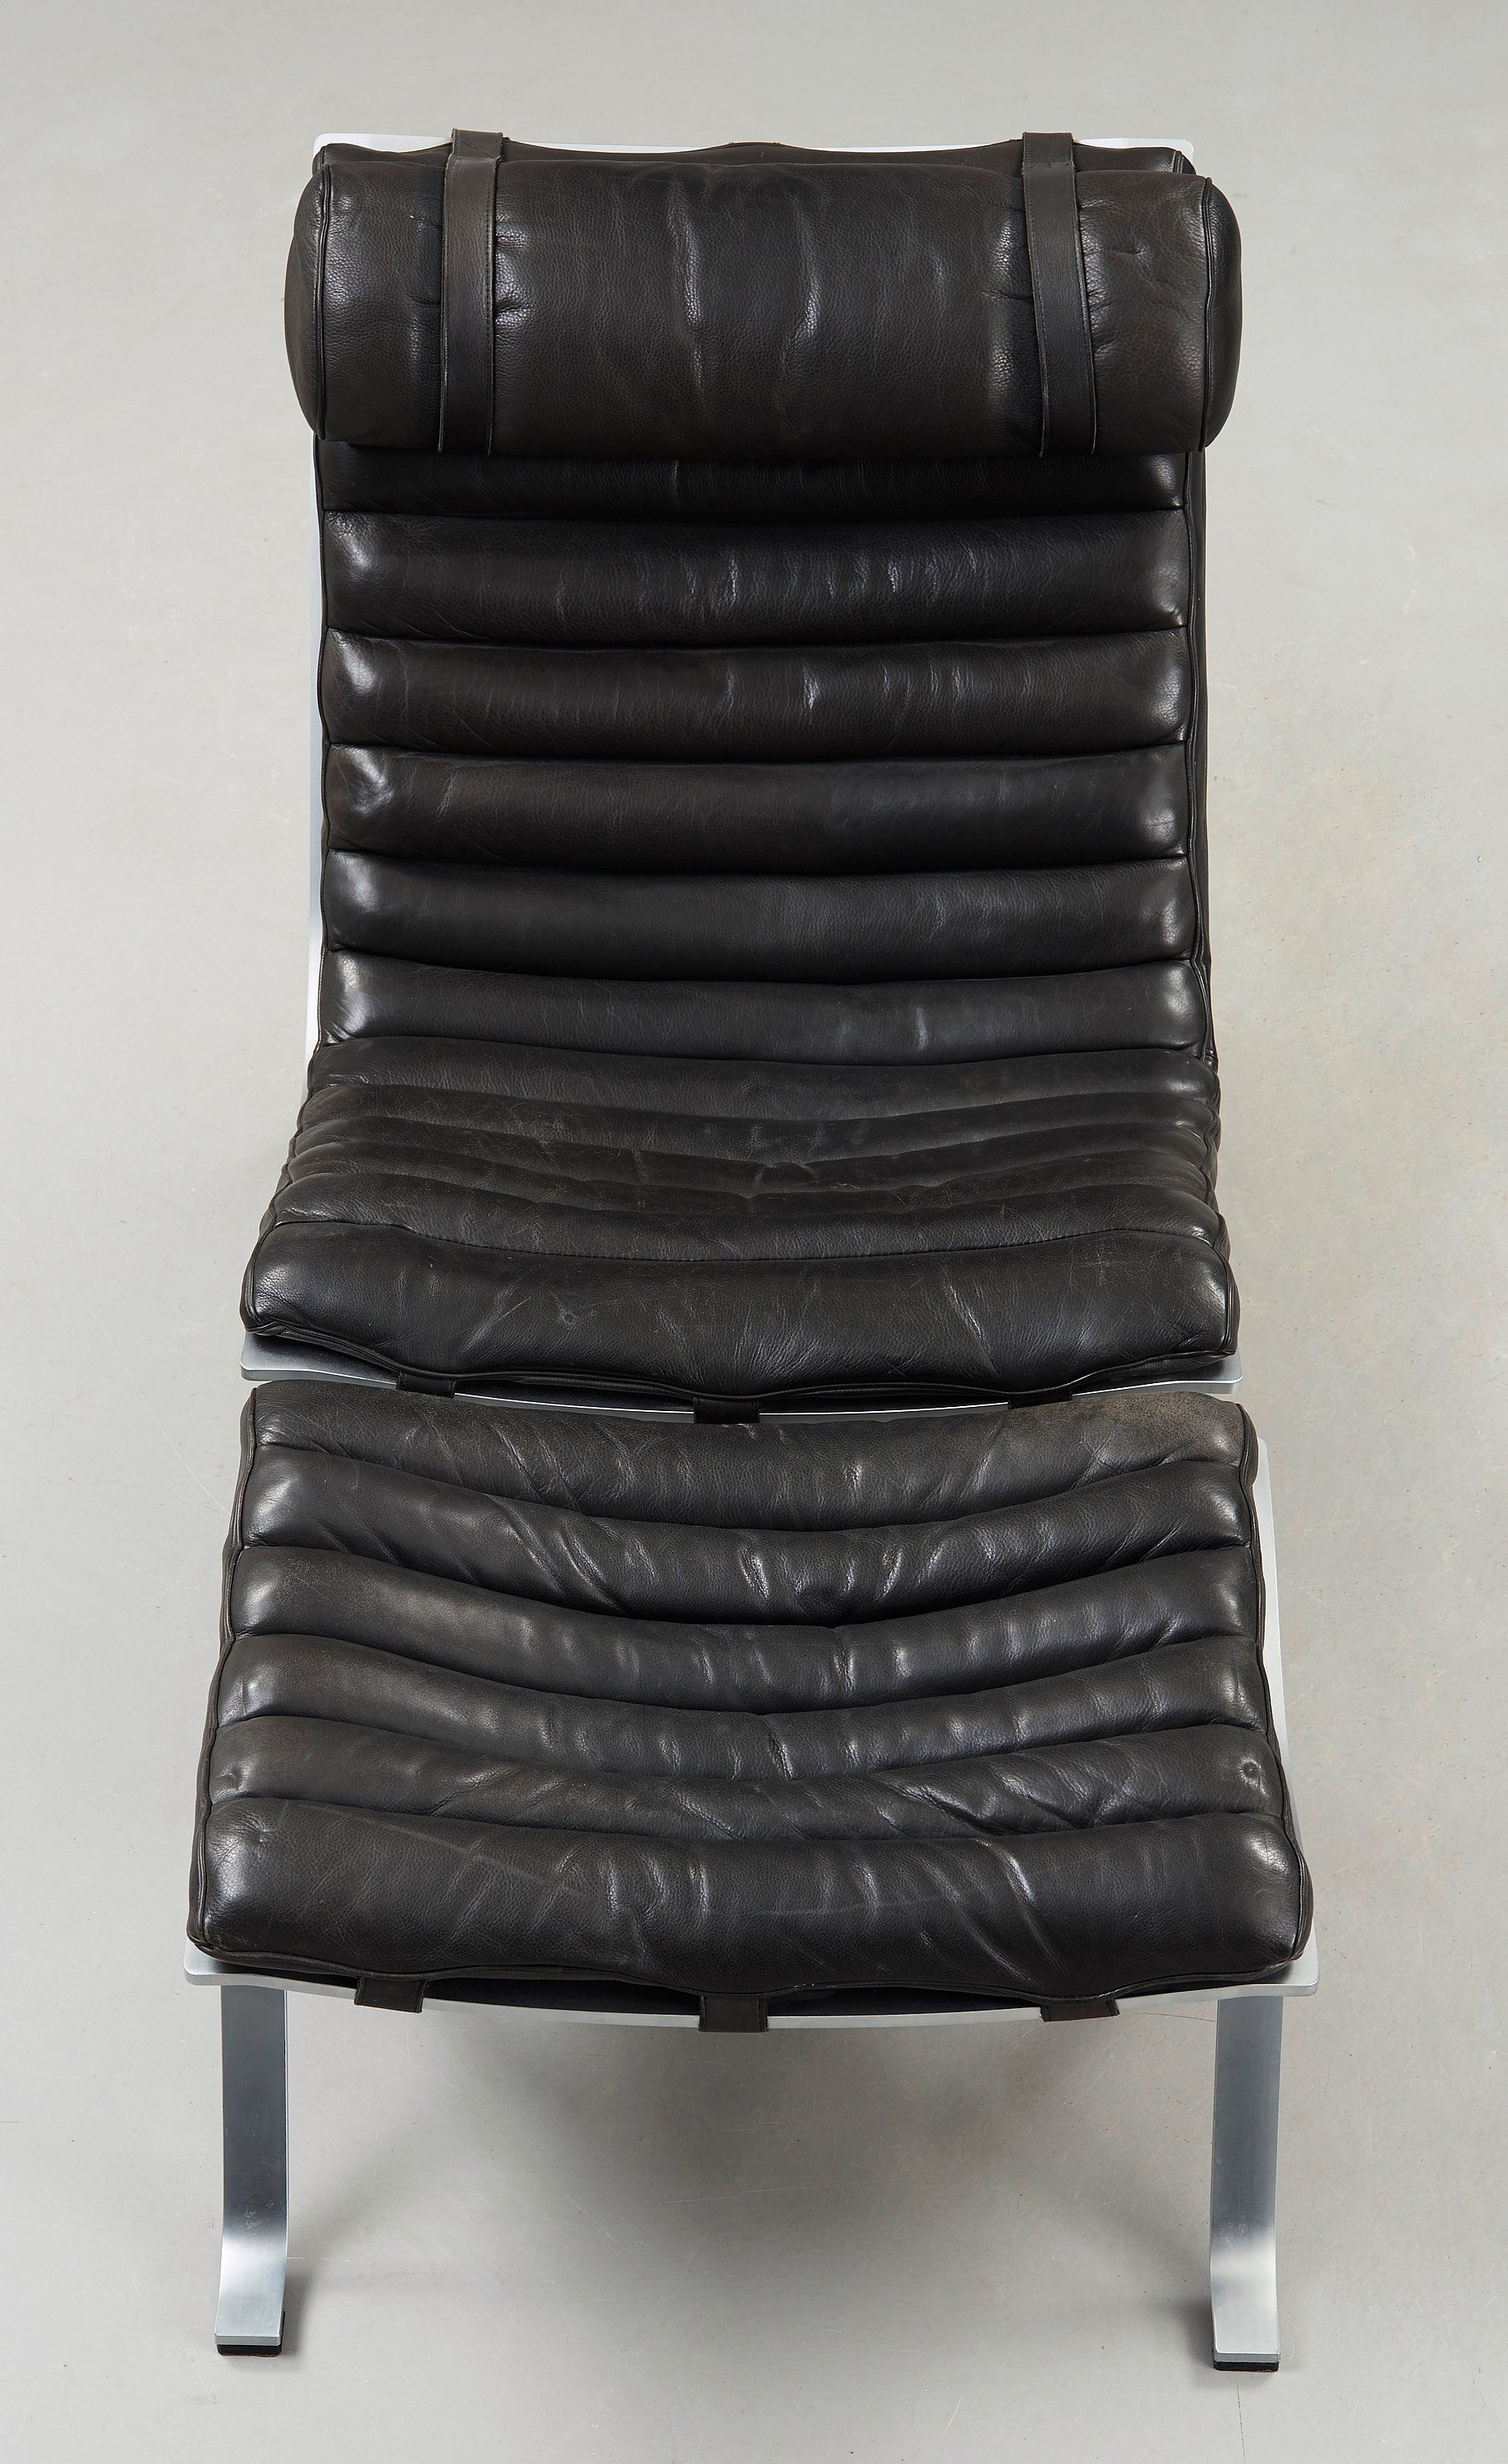 Wondrous Arne Norell An Ari Steel And Black Leather Lounge Chair Gmtry Best Dining Table And Chair Ideas Images Gmtryco